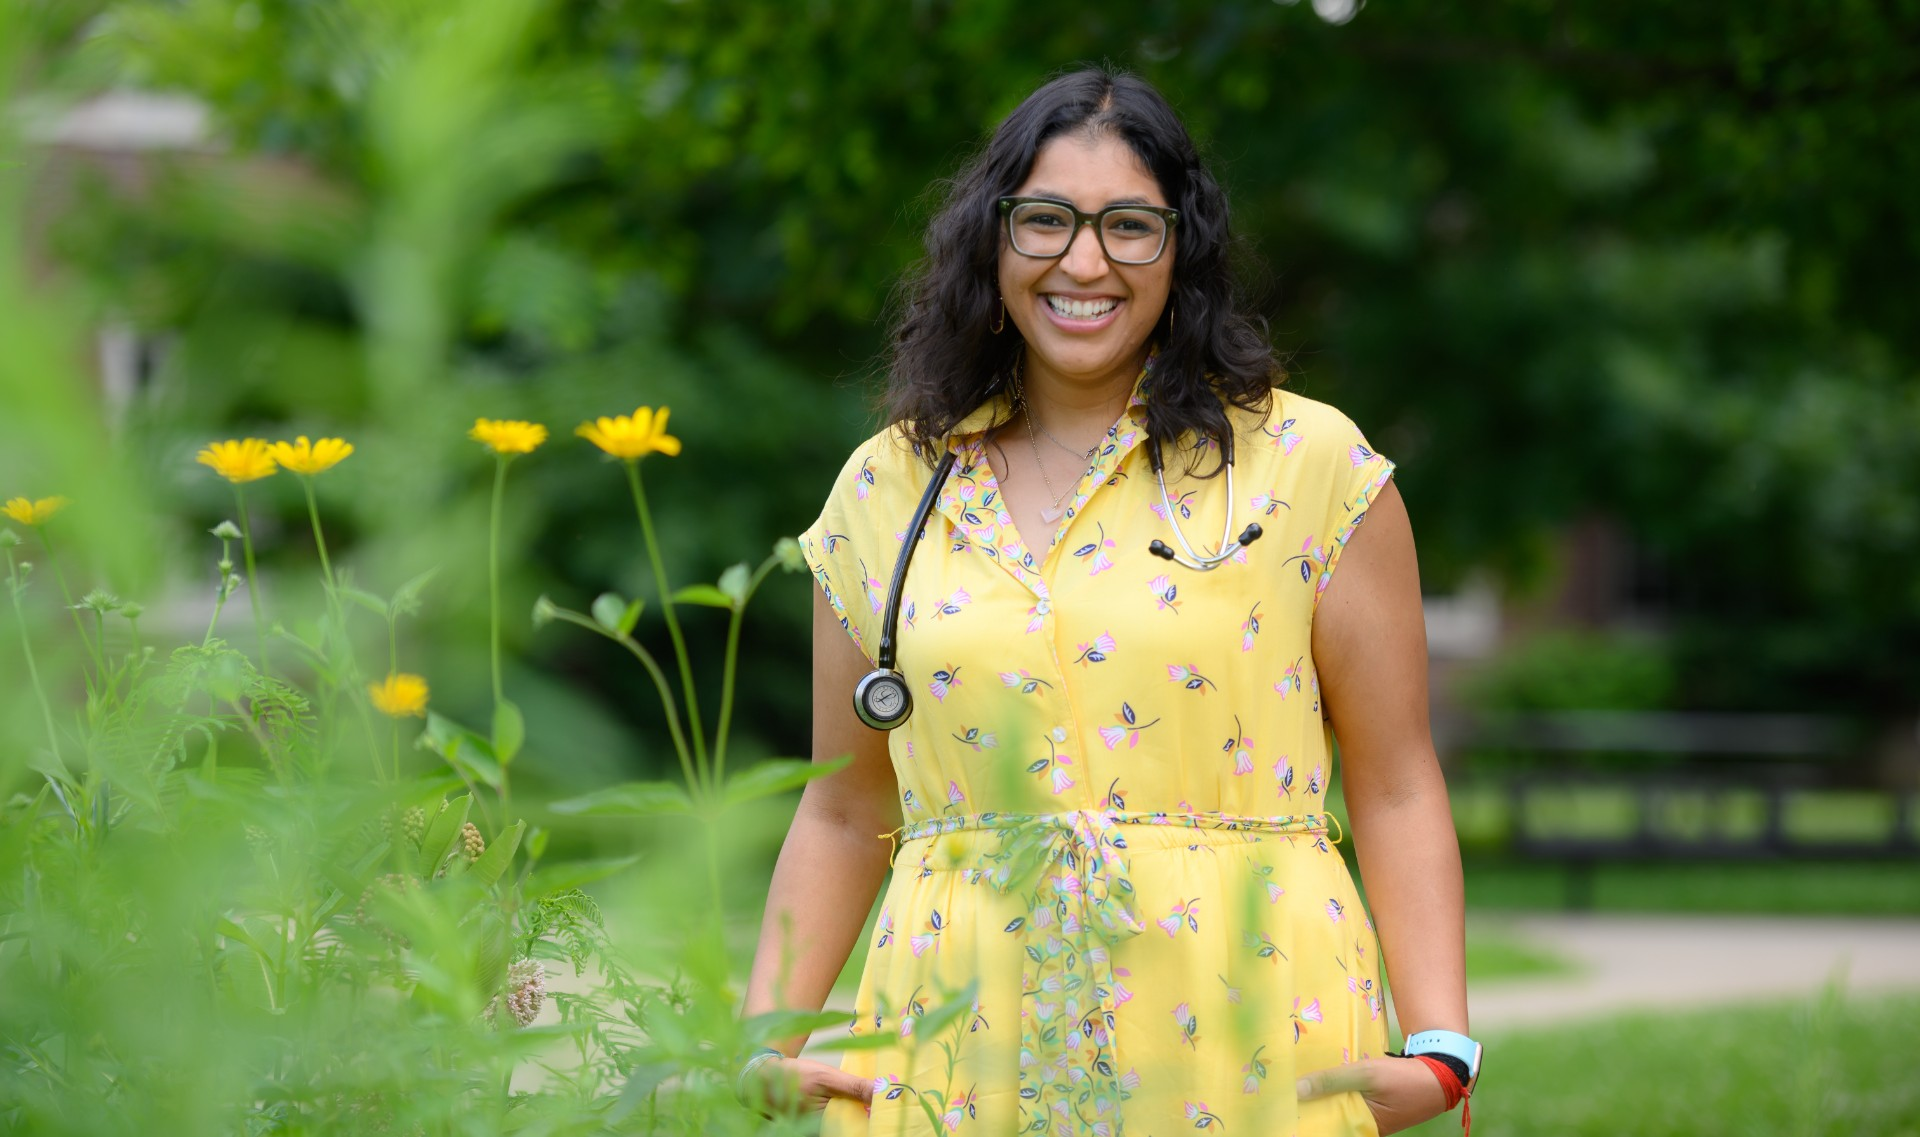 Dr. Patel stands next to some yellow flowers as she smiles directly at the camera.